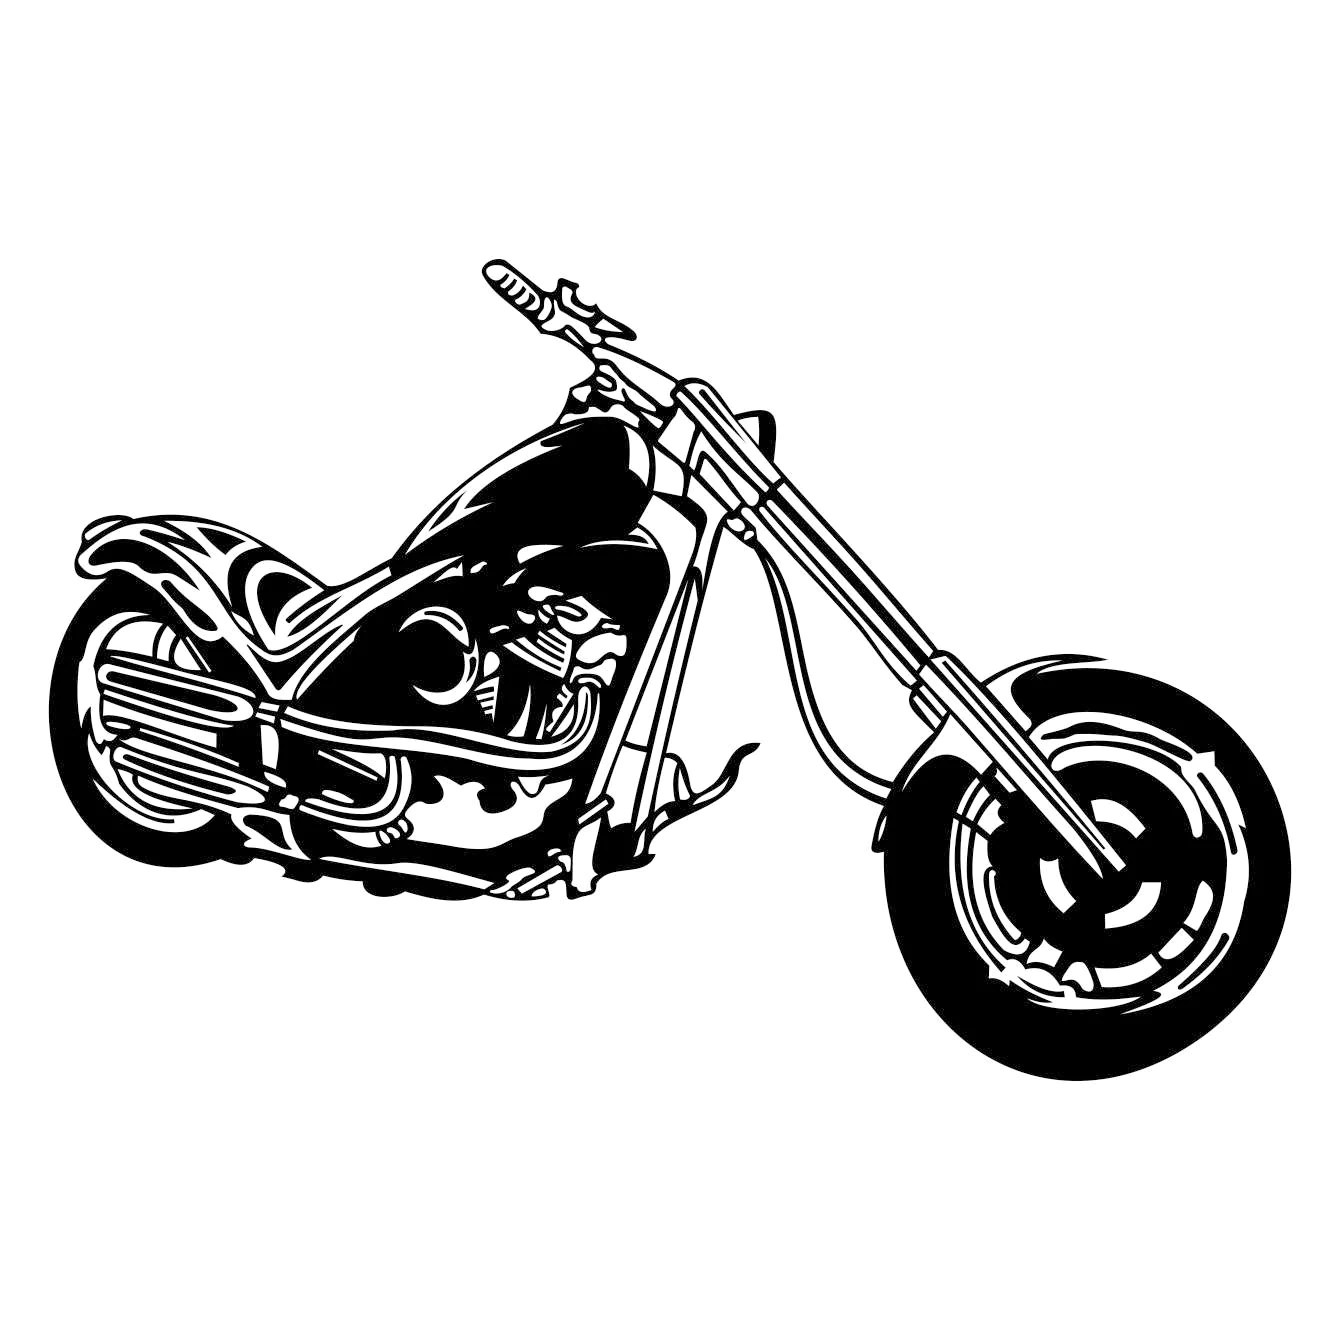 Motorcycle Chopper Graphics Svg Dxf Eps Cdr Ai Vector